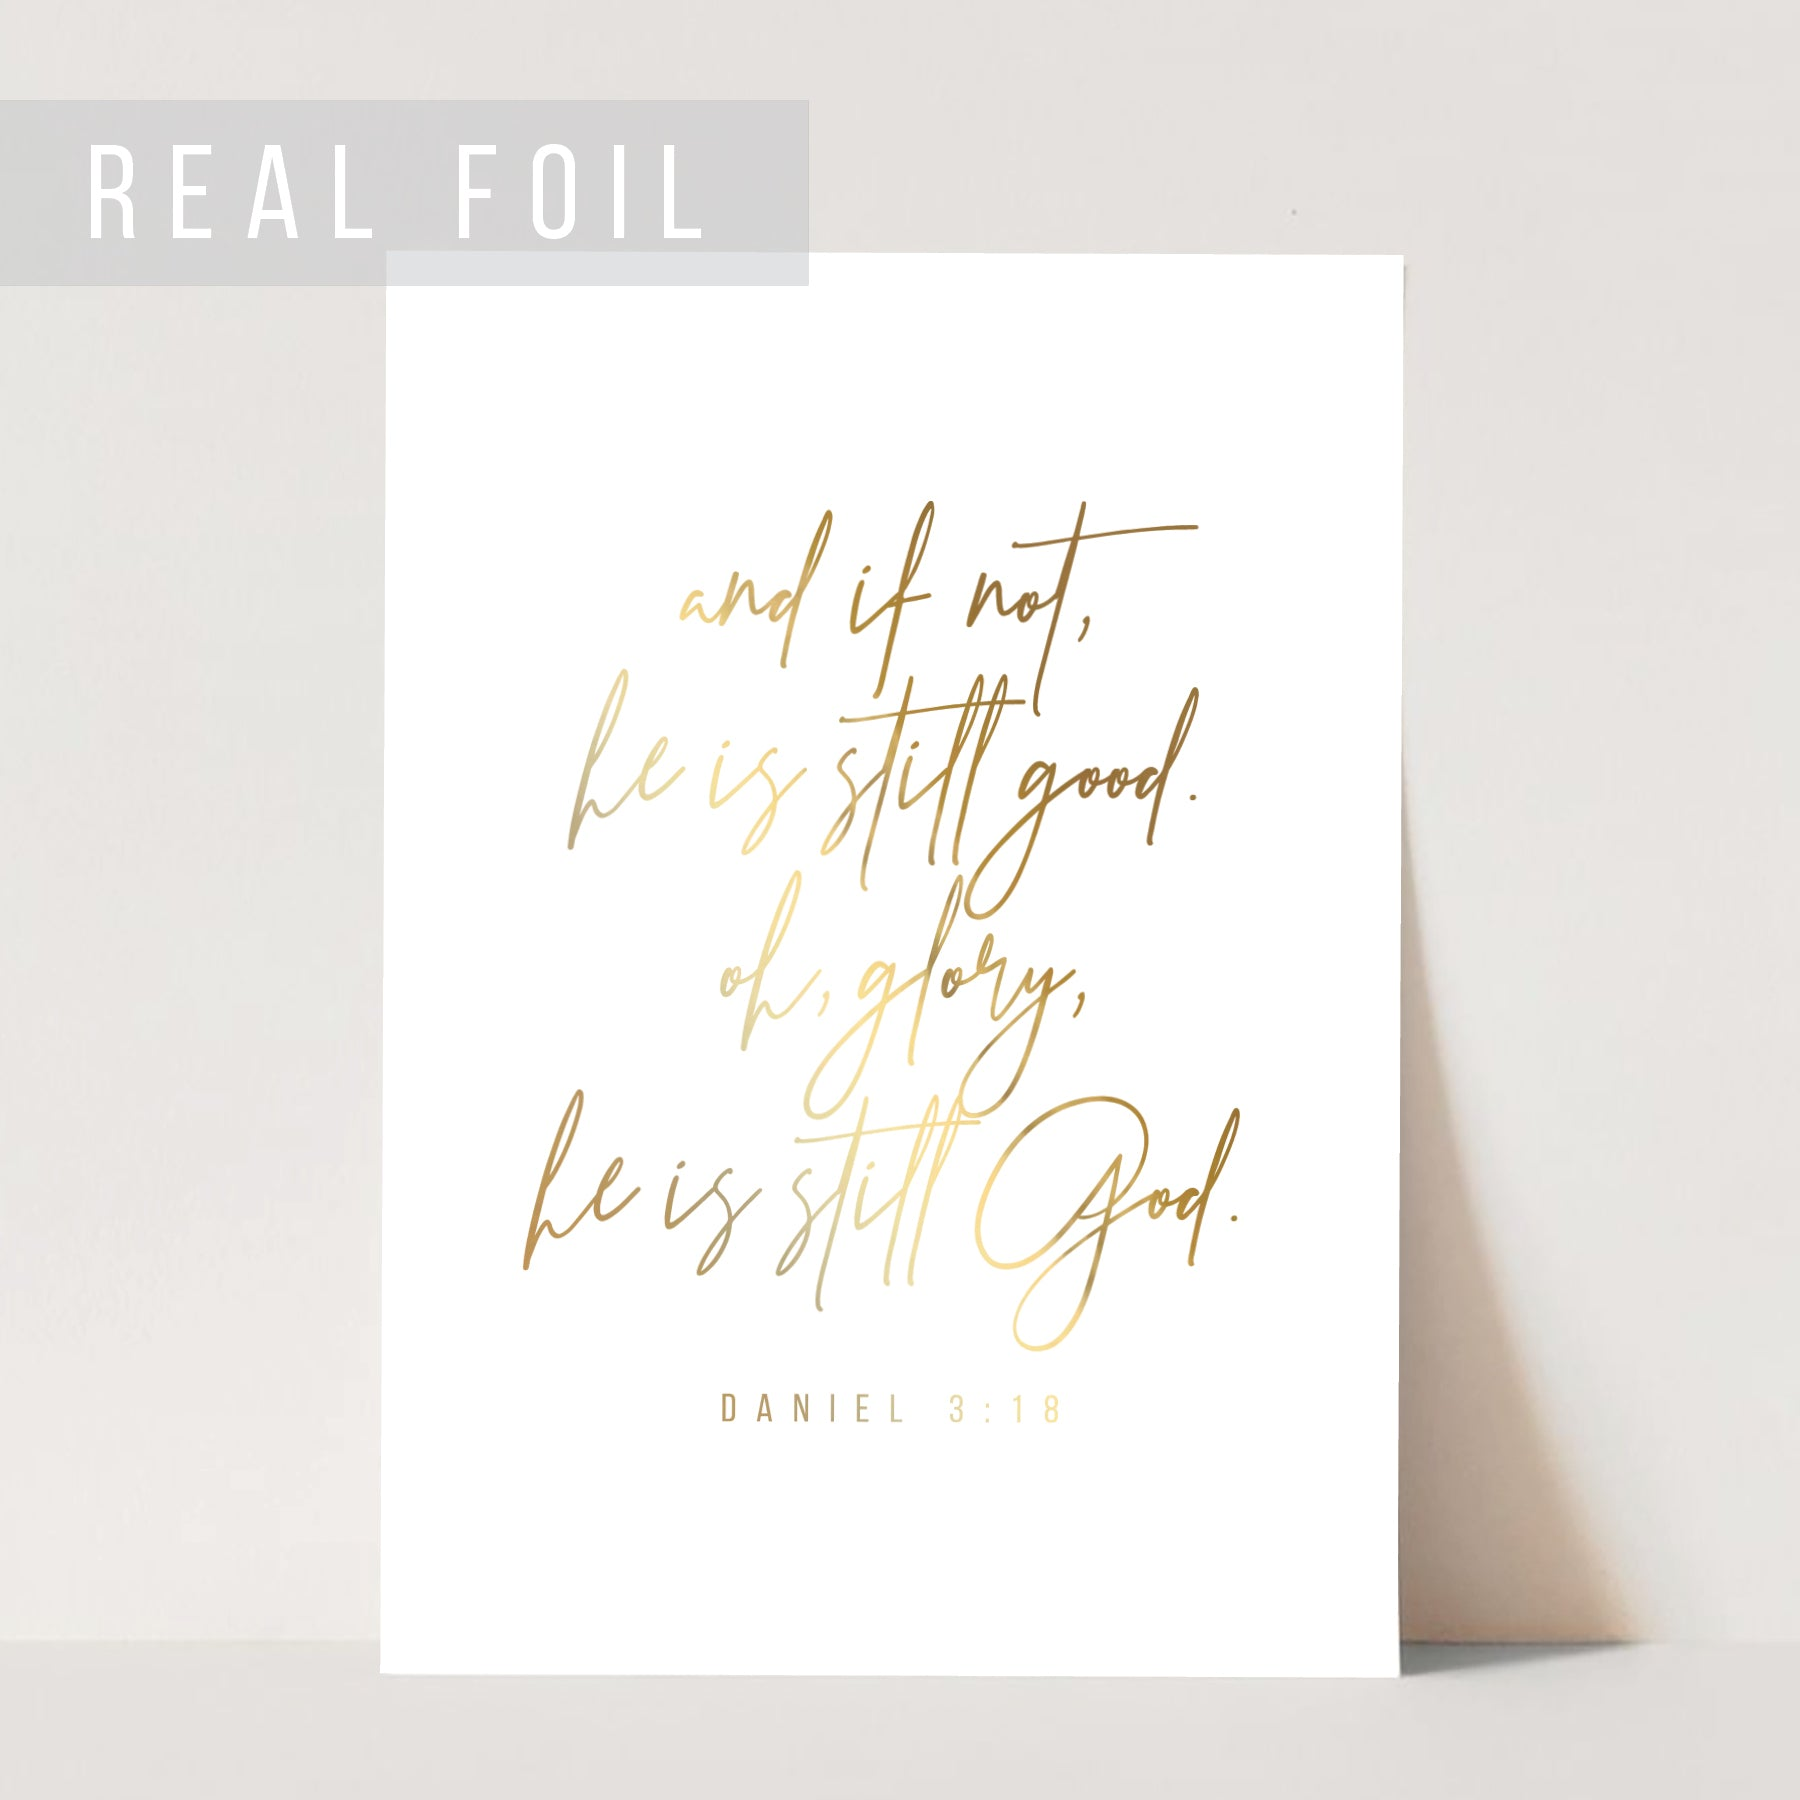 And If Not, He Is Still Good. Oh, Glory, He Is Still God. -Daniel 3:18 Foiled Art Print